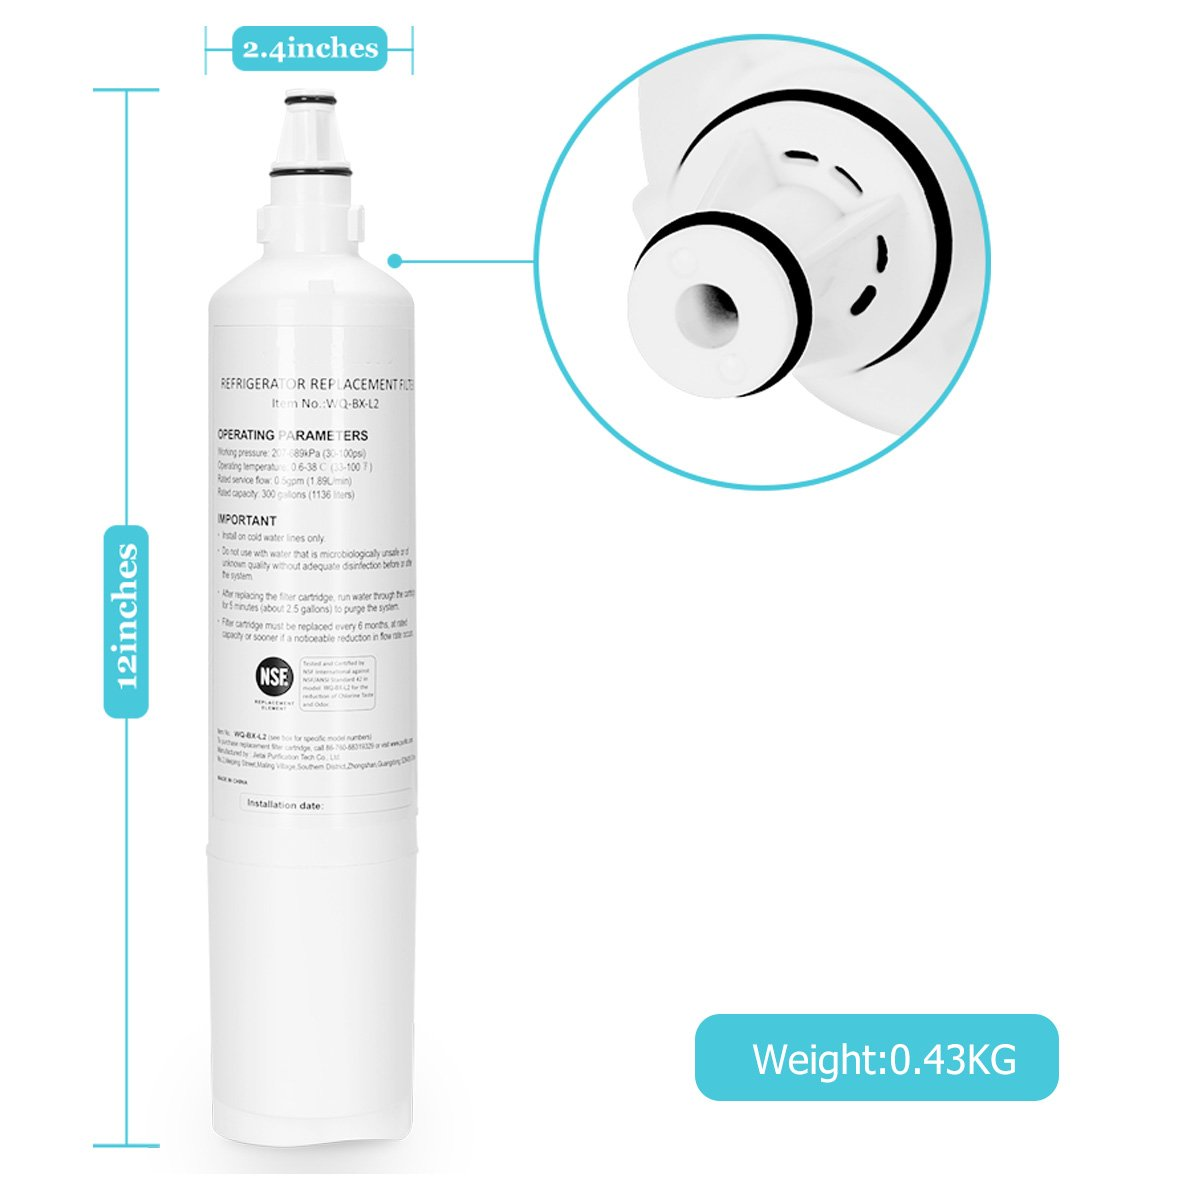 Ltd JTB-1397 ALTME 3Pack Refrigerator Water Filter 9990 Water Filter Compatible Replacement for LG LT600P,9990,5231JA2006F,5231JA2006B,5231JA2006A,469990,5231JA2006E,9990P,5231JA2006A-S,5231JA2006B-S Jietai Purification Tech Co